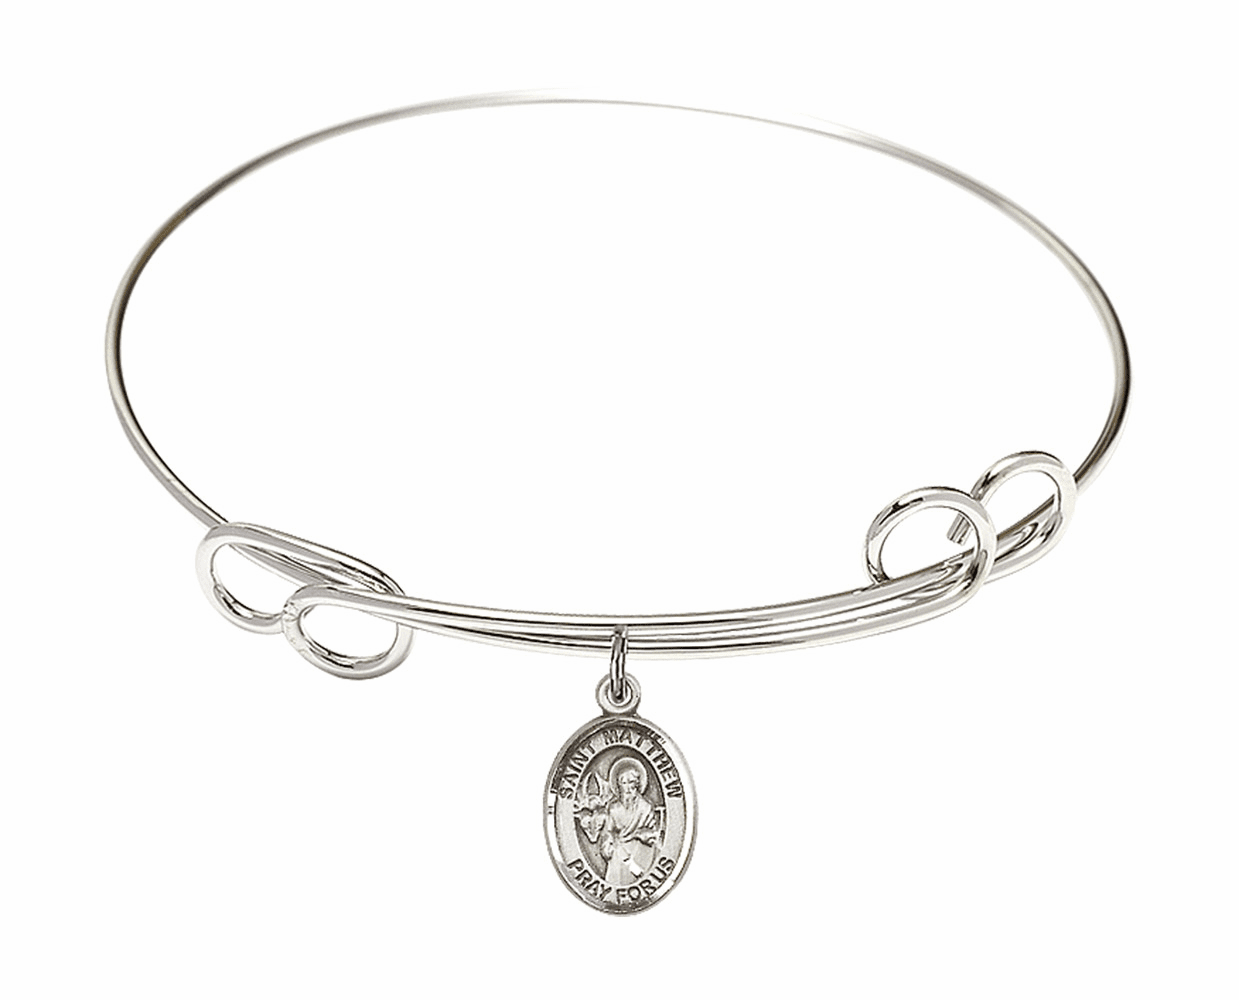 Round Loop St Matthew the Apostle Bangle Charm Bracelet by Bliss